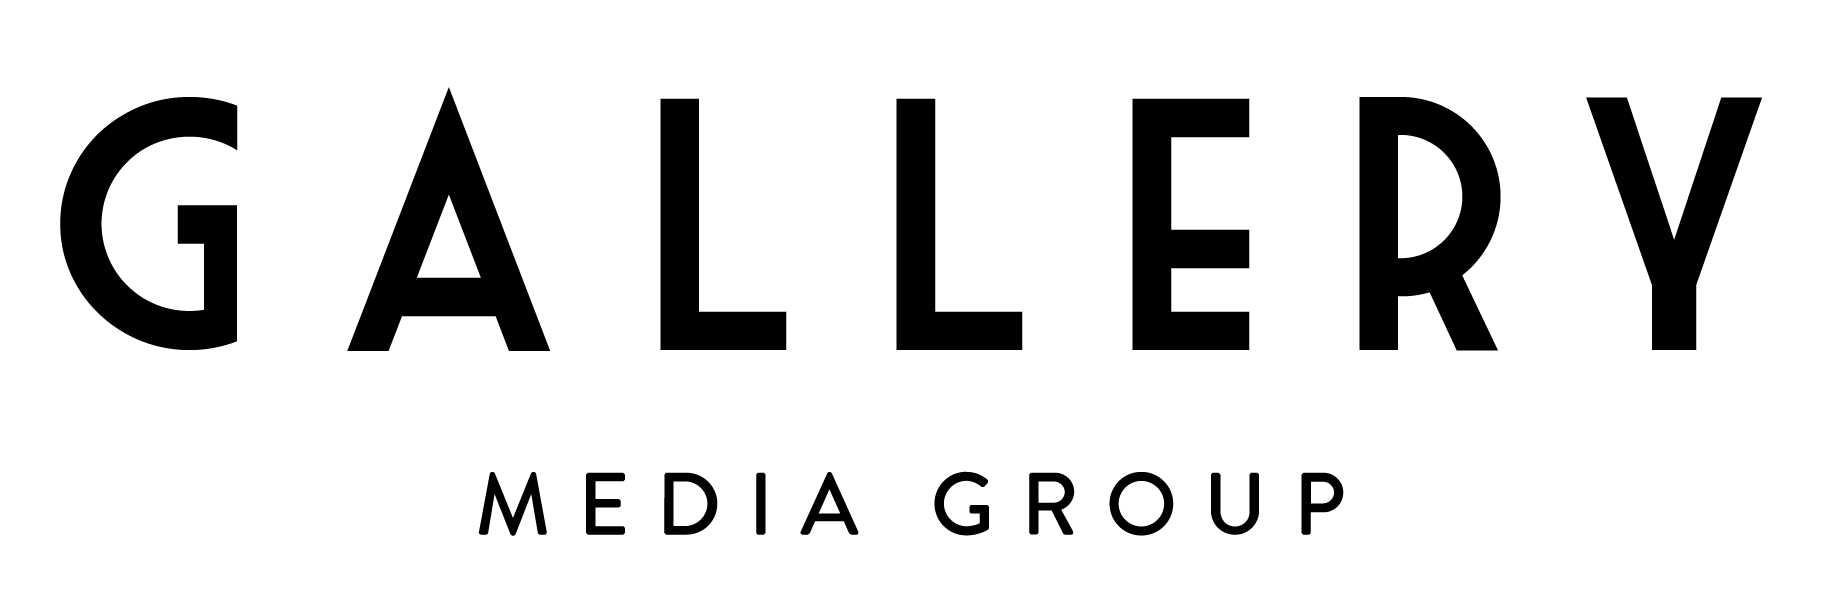 Gallery Media Group